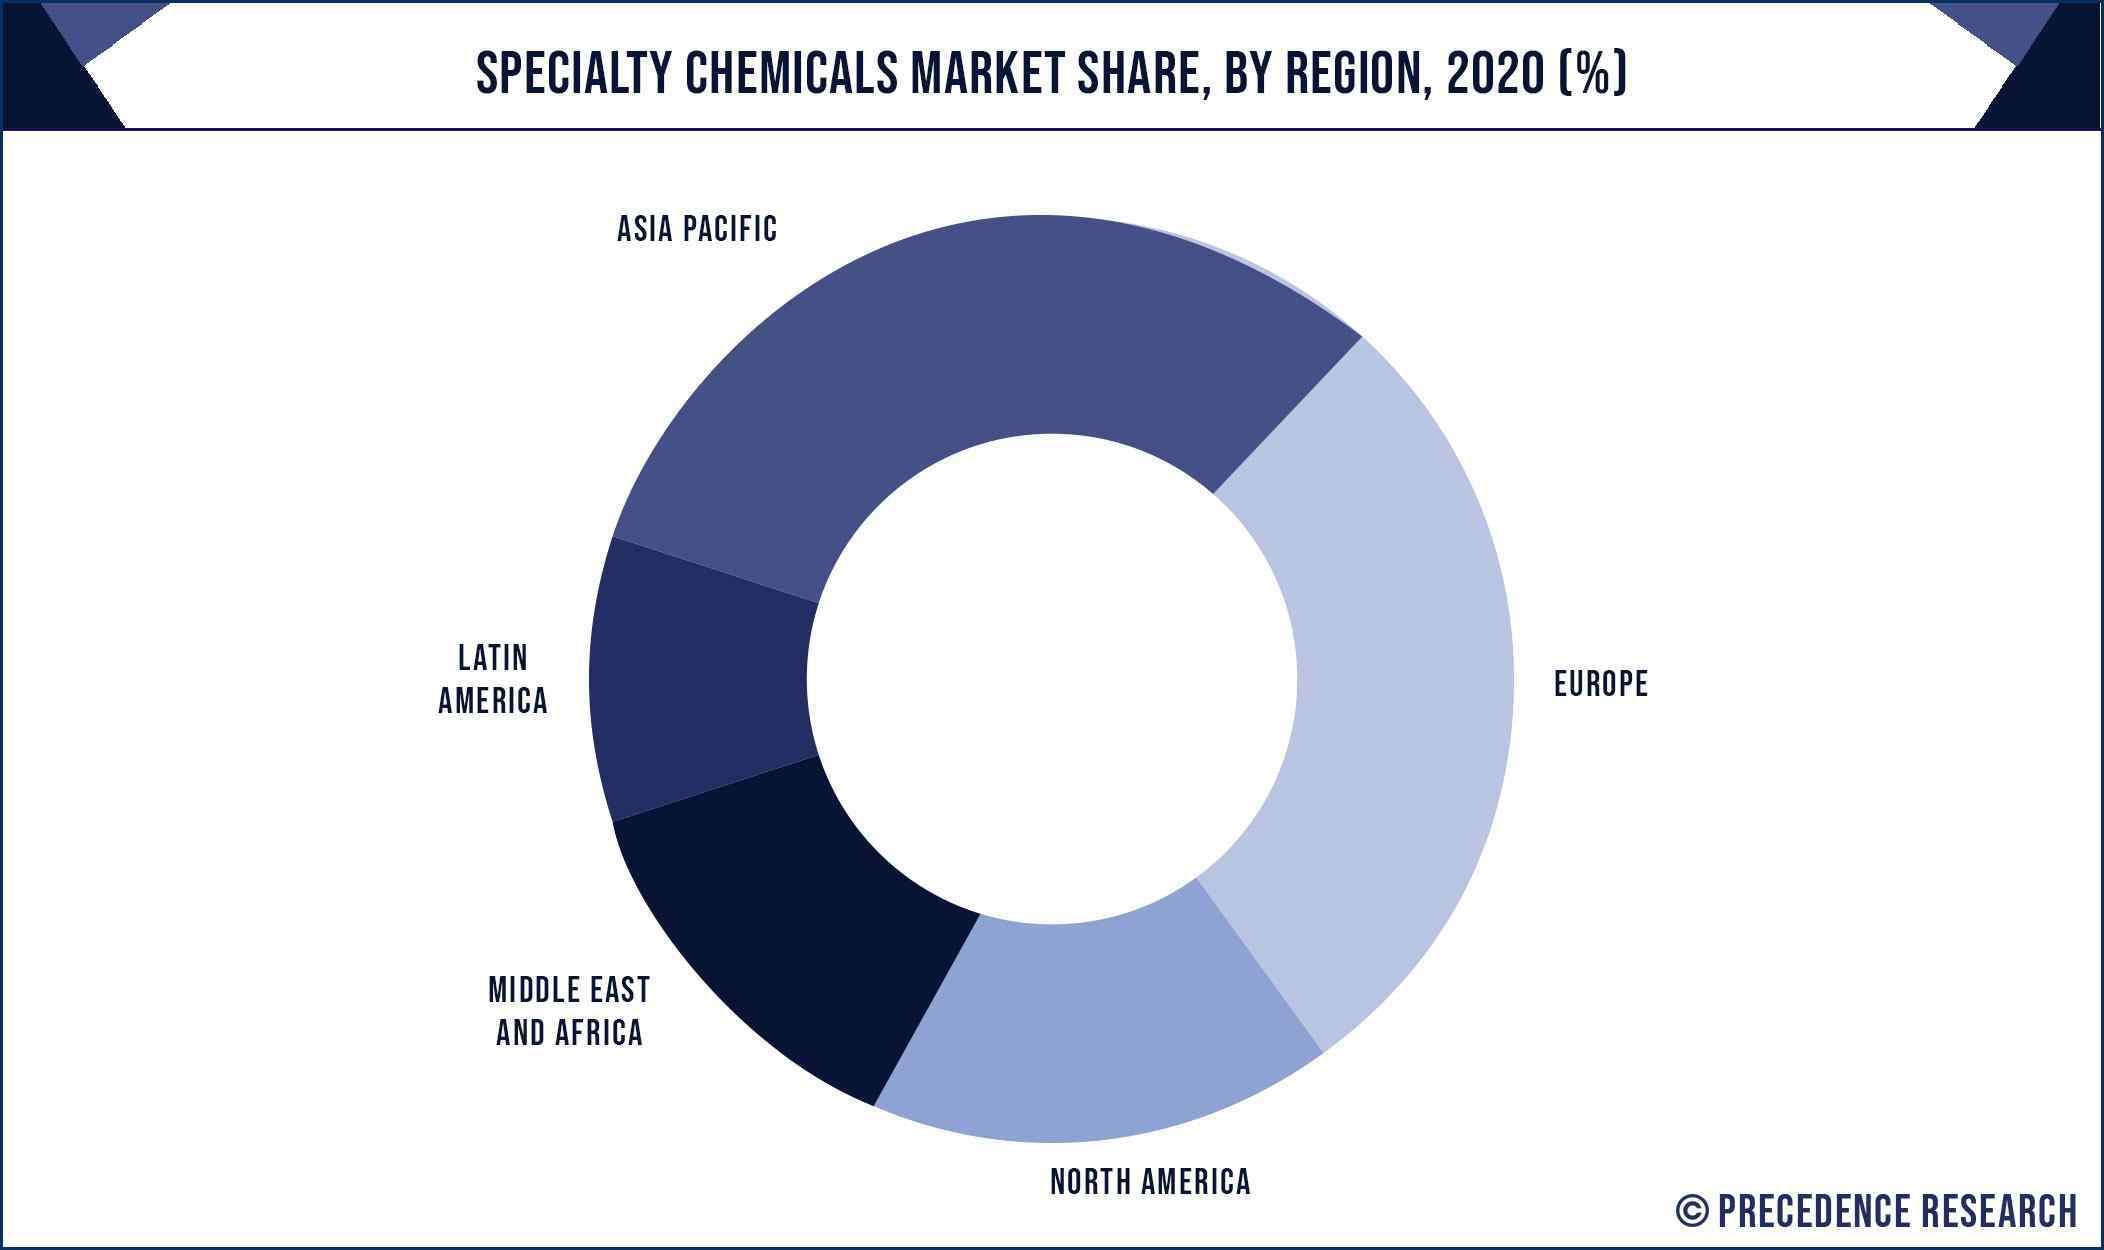 Specialty Chemicals Market Share, By Region, 2020 (%)